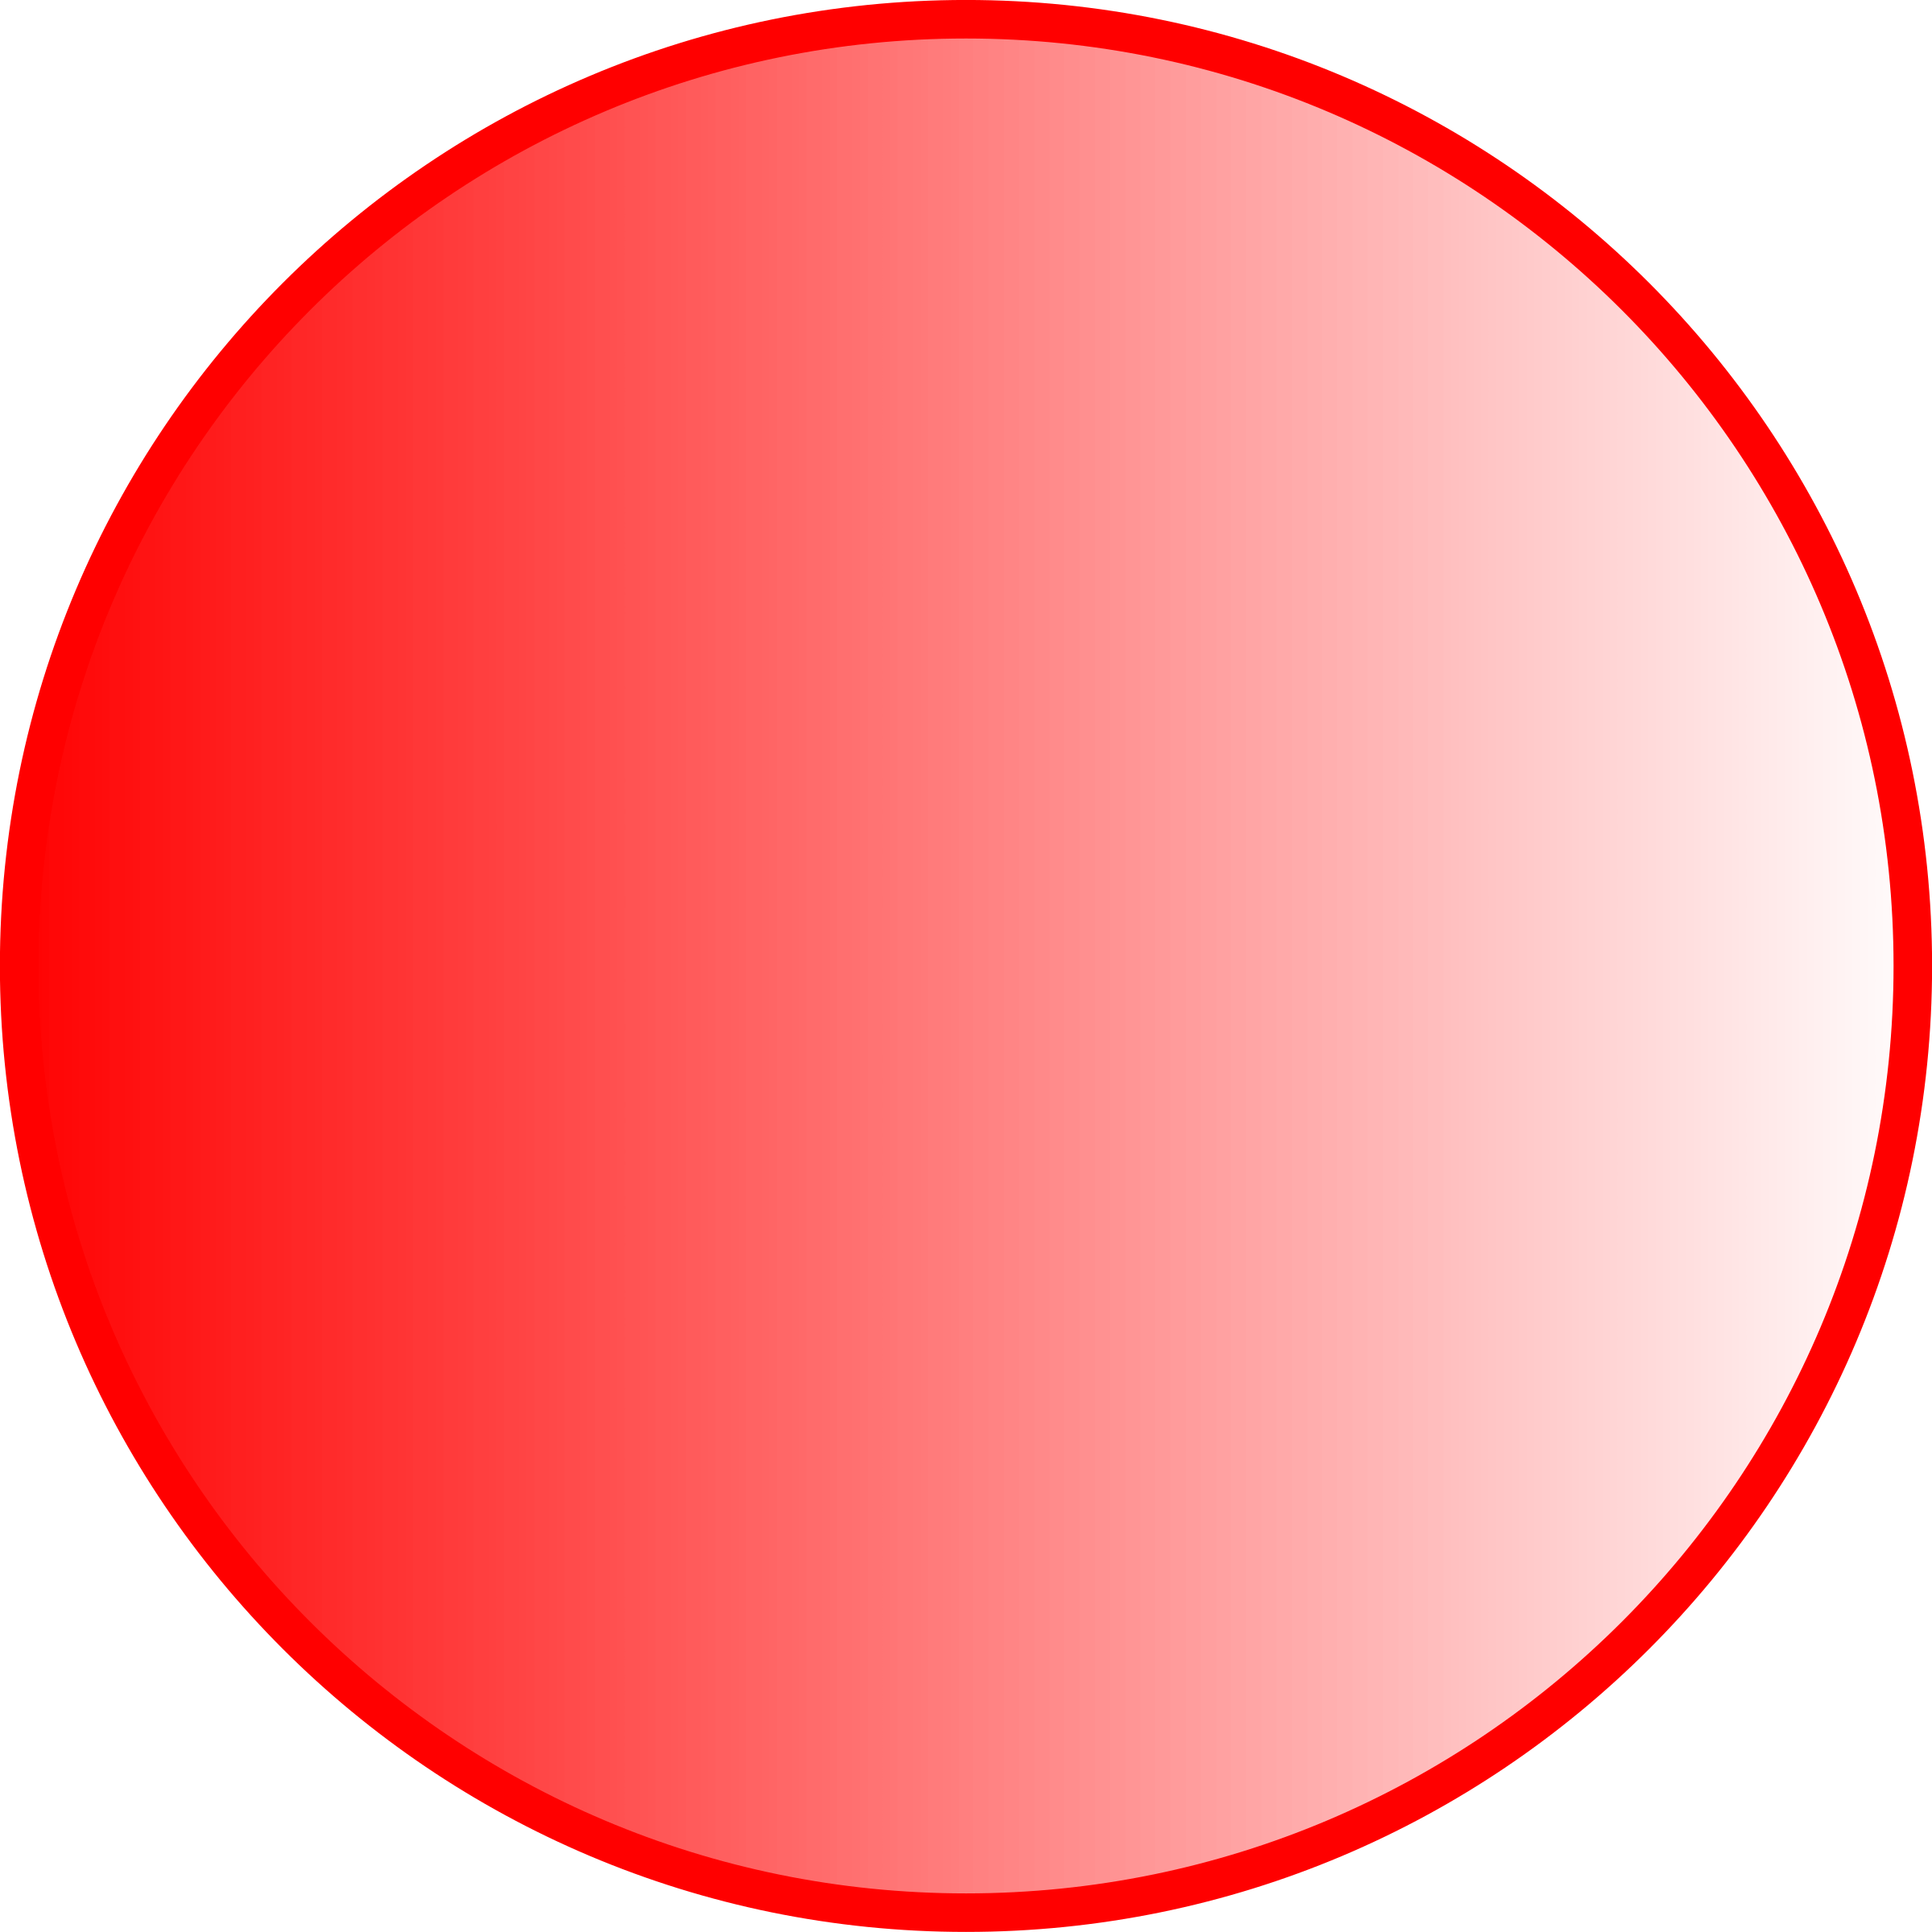 Sphere clipart red ball Sphere Clipart Red Red sphere